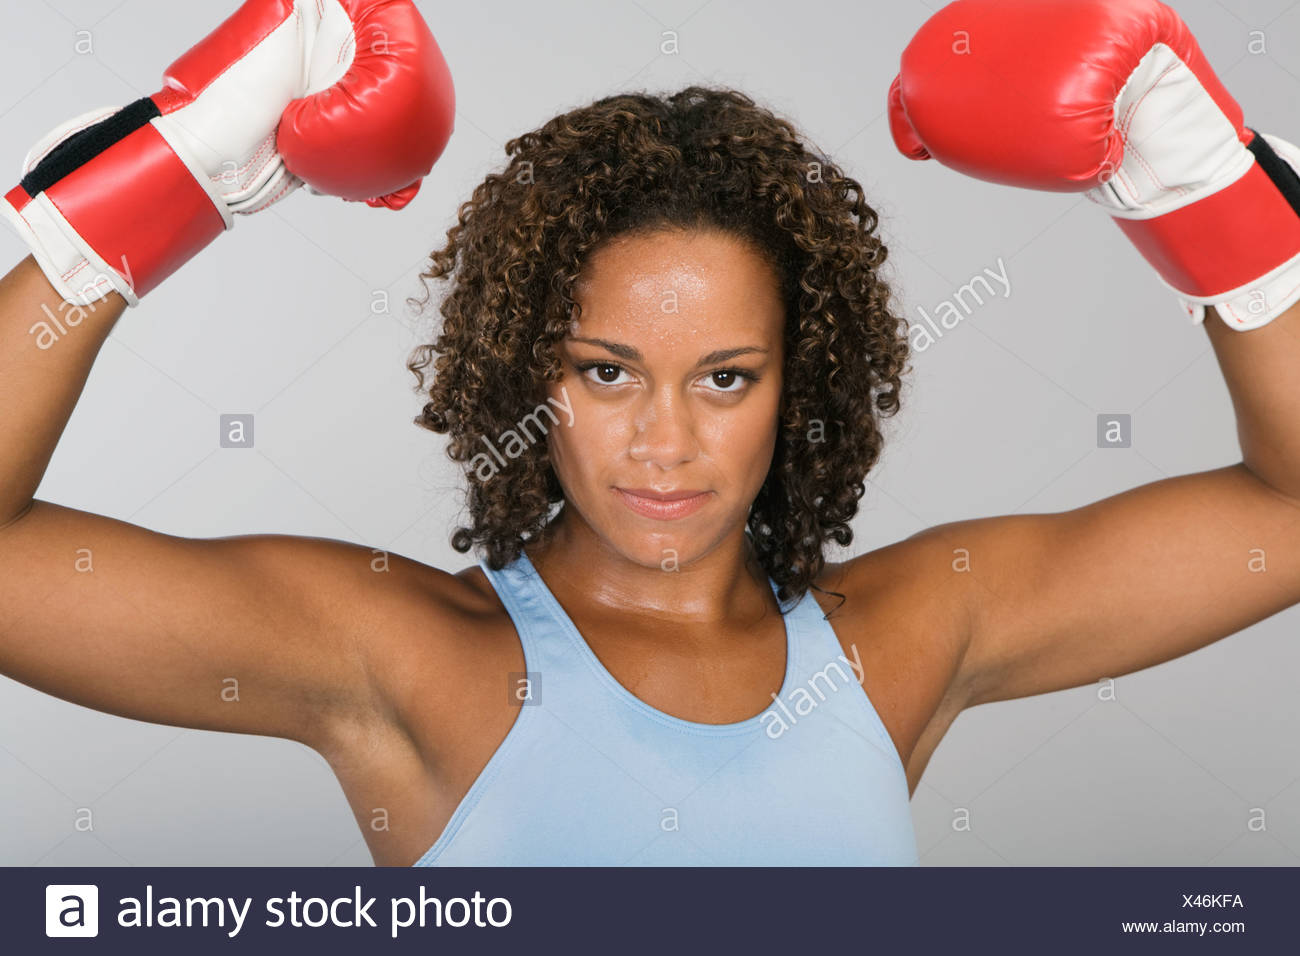 African woman wearing boxing gloves Stock Photo